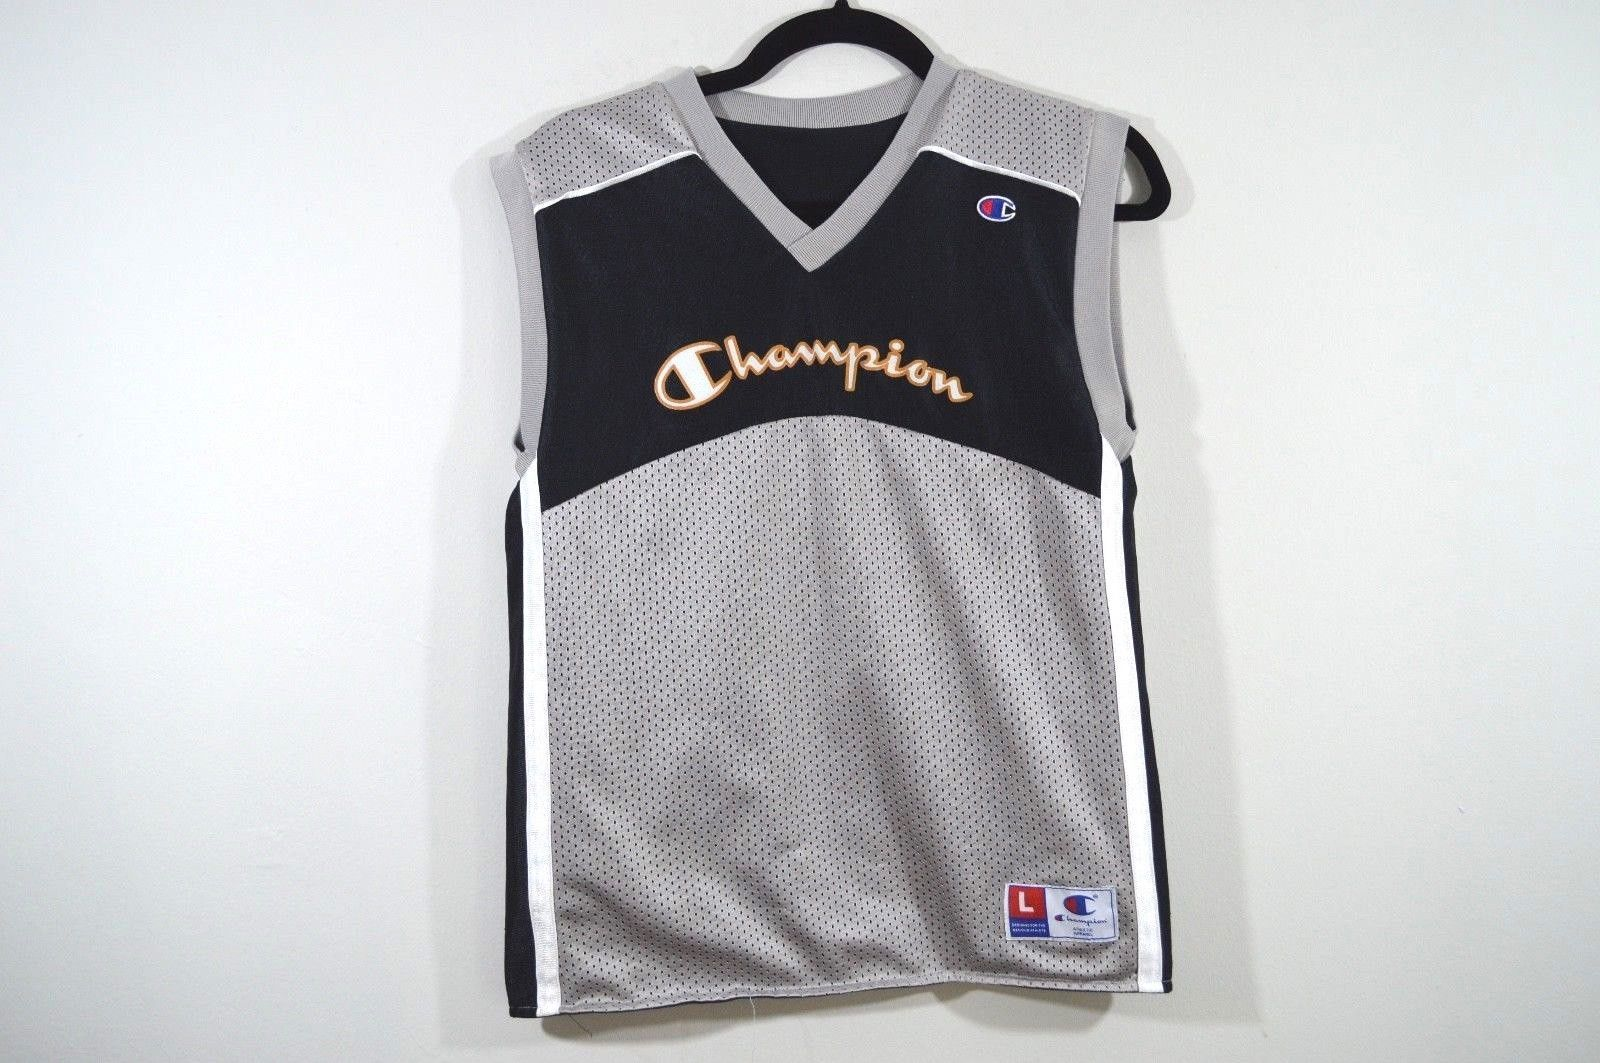 Vintage 90s CHAMPION Mens Small Reversible Spell Out Basketball Jersey Shirt